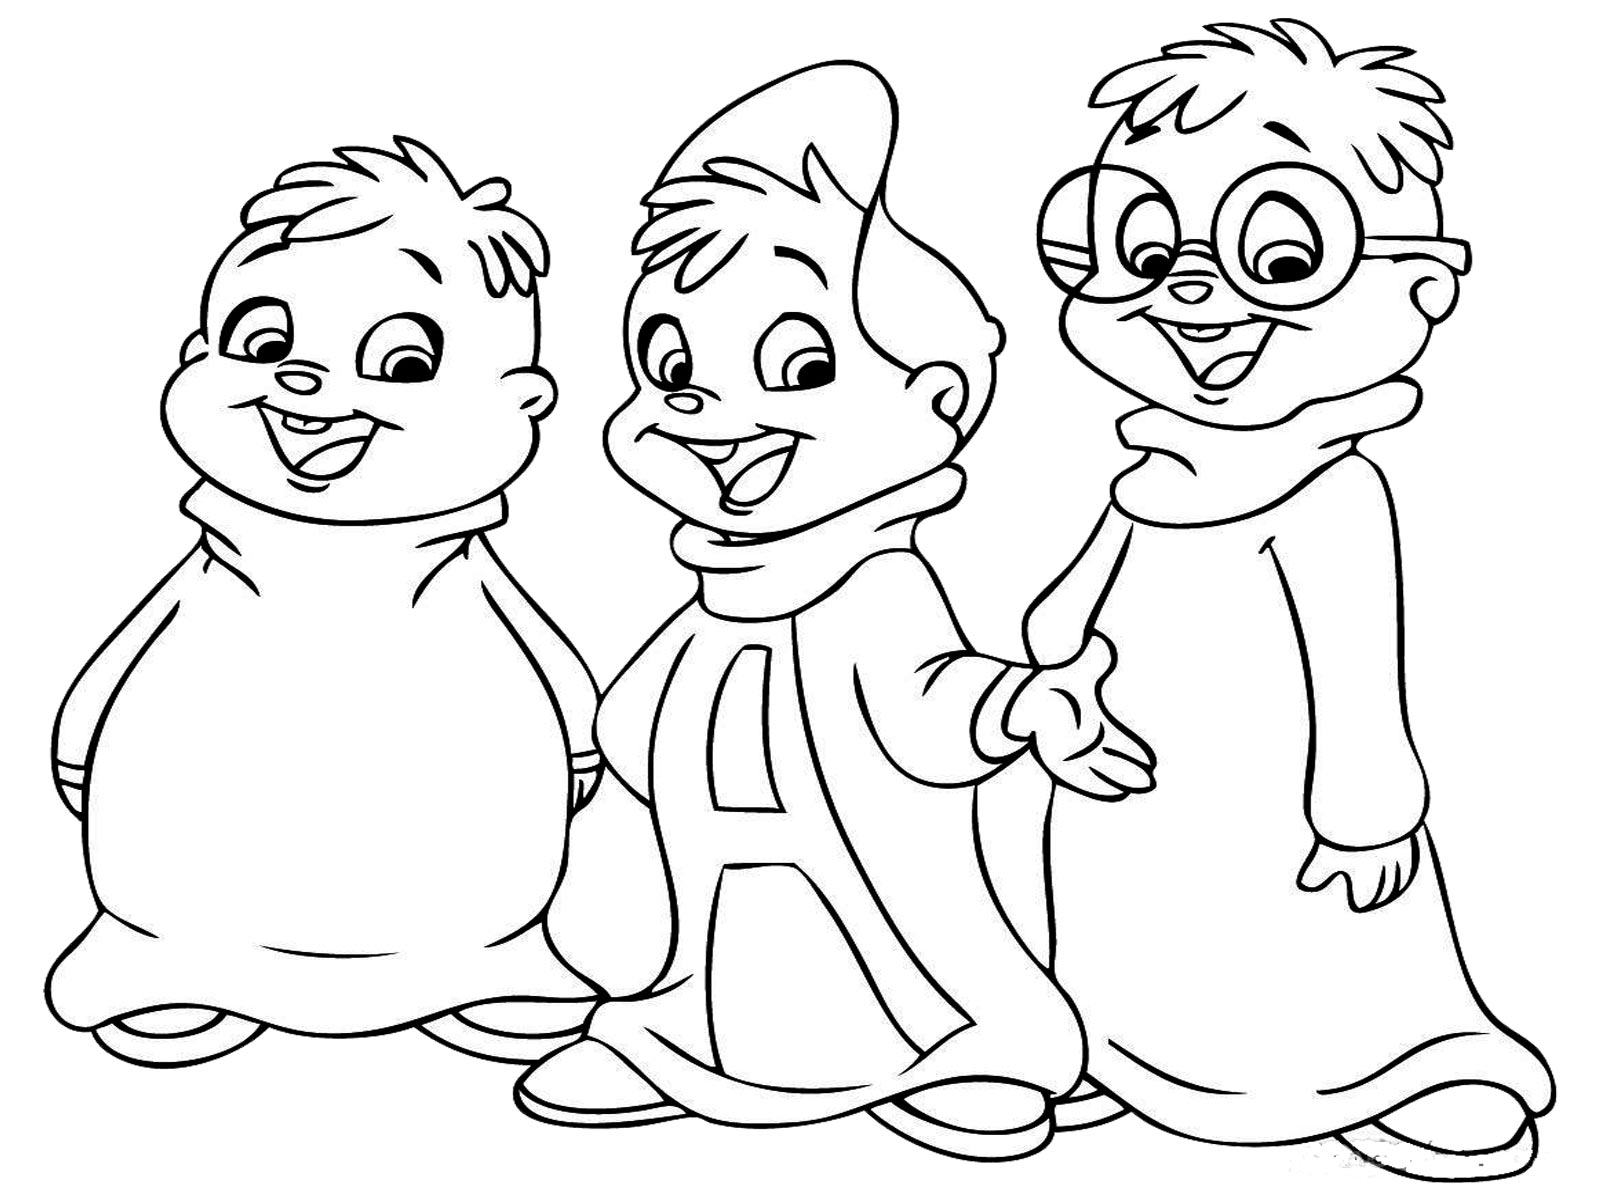 childrens day coloring pages - Printable Coloring For Kids